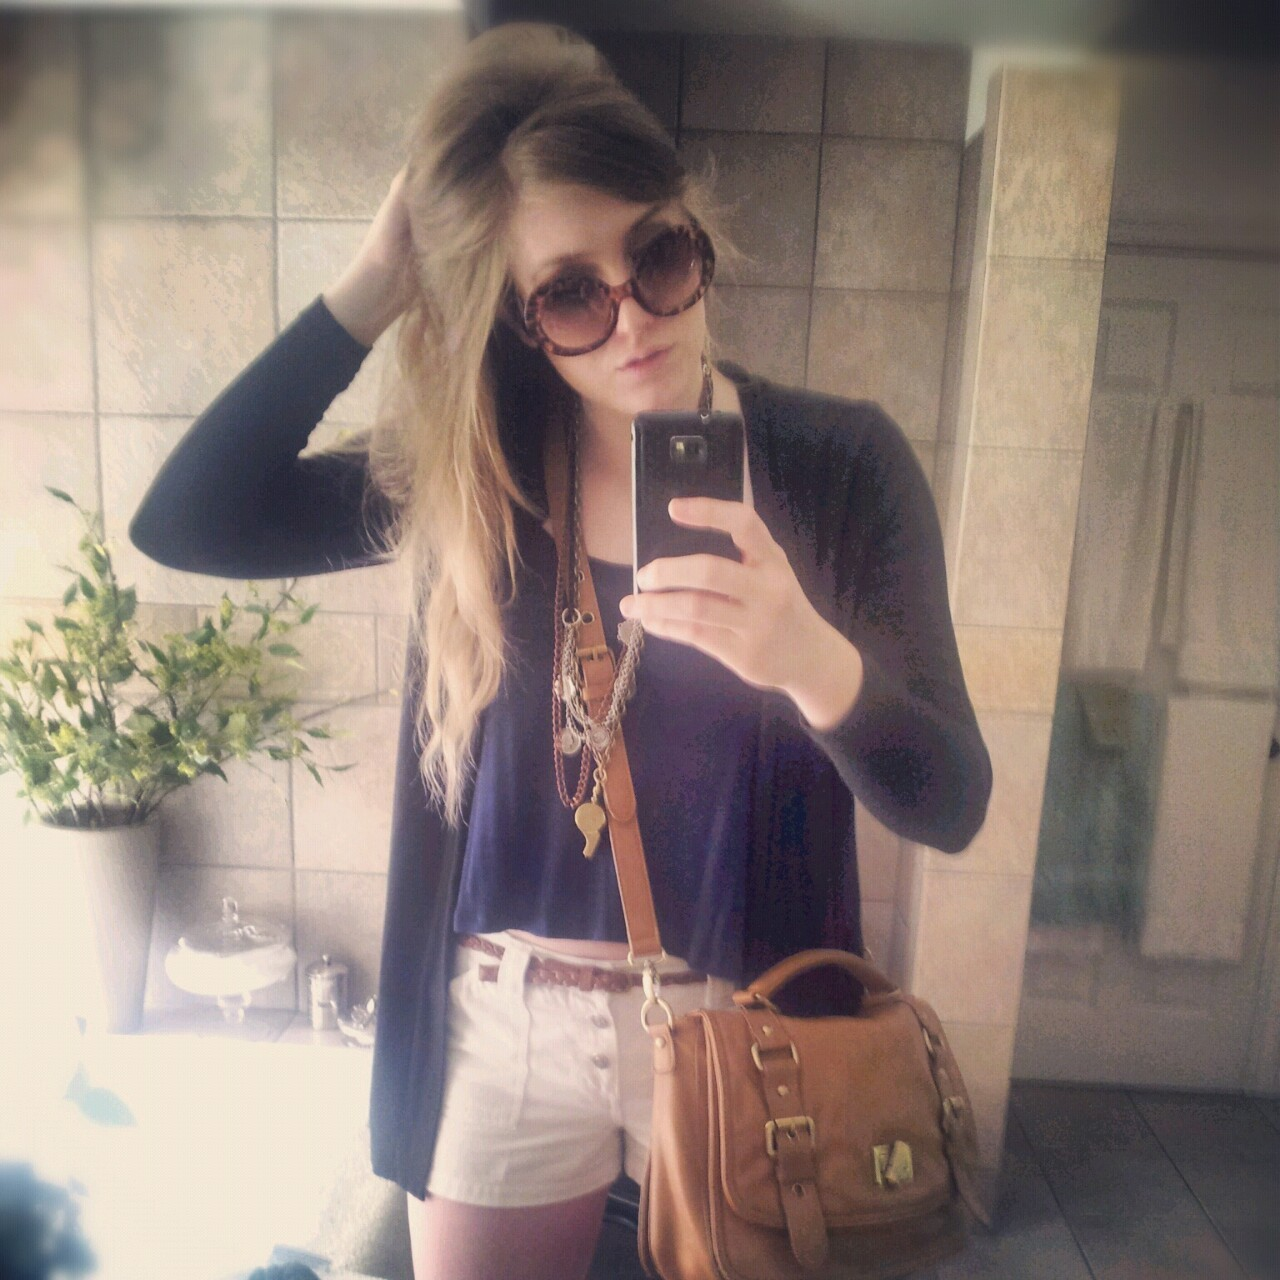 [Bag- Aldo, Sunnies- gift from Romwe.com, Whistle Necklace- gift from Madewell] The weather seems to have finally stopped dipping into cold weather territory (knock on wood) and stepped into warmer weather which means I may soon be able to ditch the sweater when I head out for the day. Time to switch around my closets to reflect this amazing weather and toss out any old items from the winter that I won't be keeping for the fall. Ps. Don't forget to follow me on instagram: theblondejournal! xx  BlogLovin'   :     Twitter    :    Instagram: TheBlondeJournal